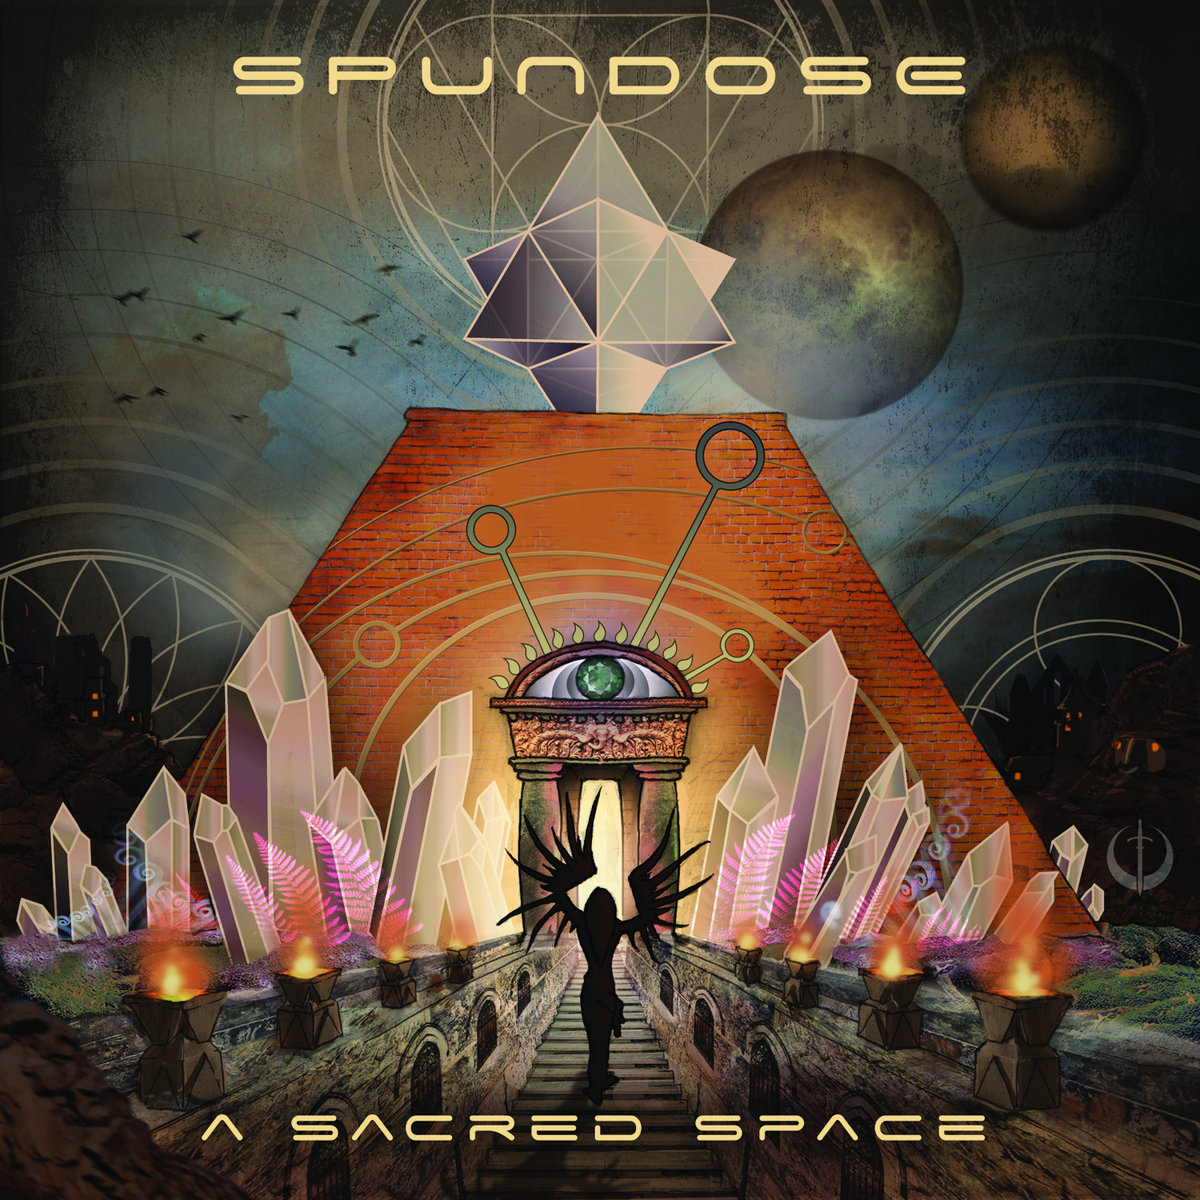 Spundose - Dream-Self @ 'A Sacred Space' album (bass, electronic)